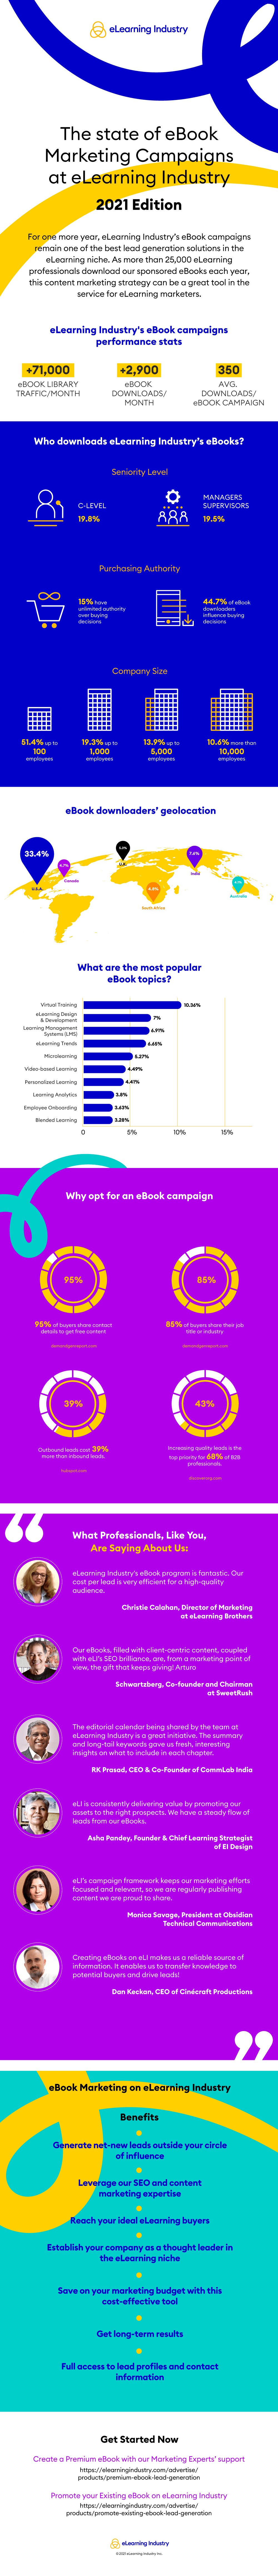 eLearning Industry - eBooks Performance Infographic 2021